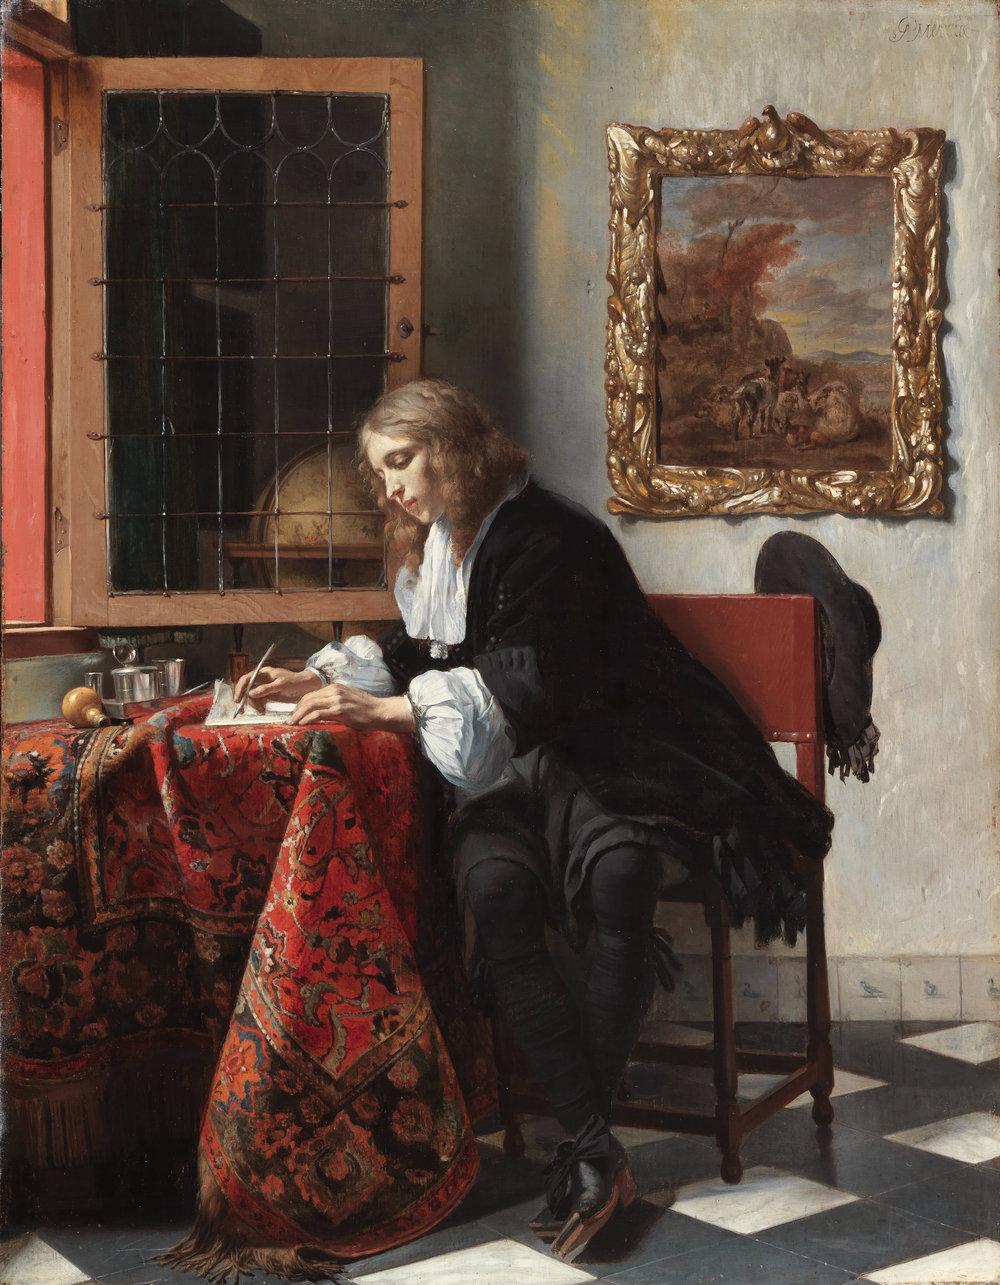 Man_Writing_a_Letter_by_Gabriël_Metsu.jpg